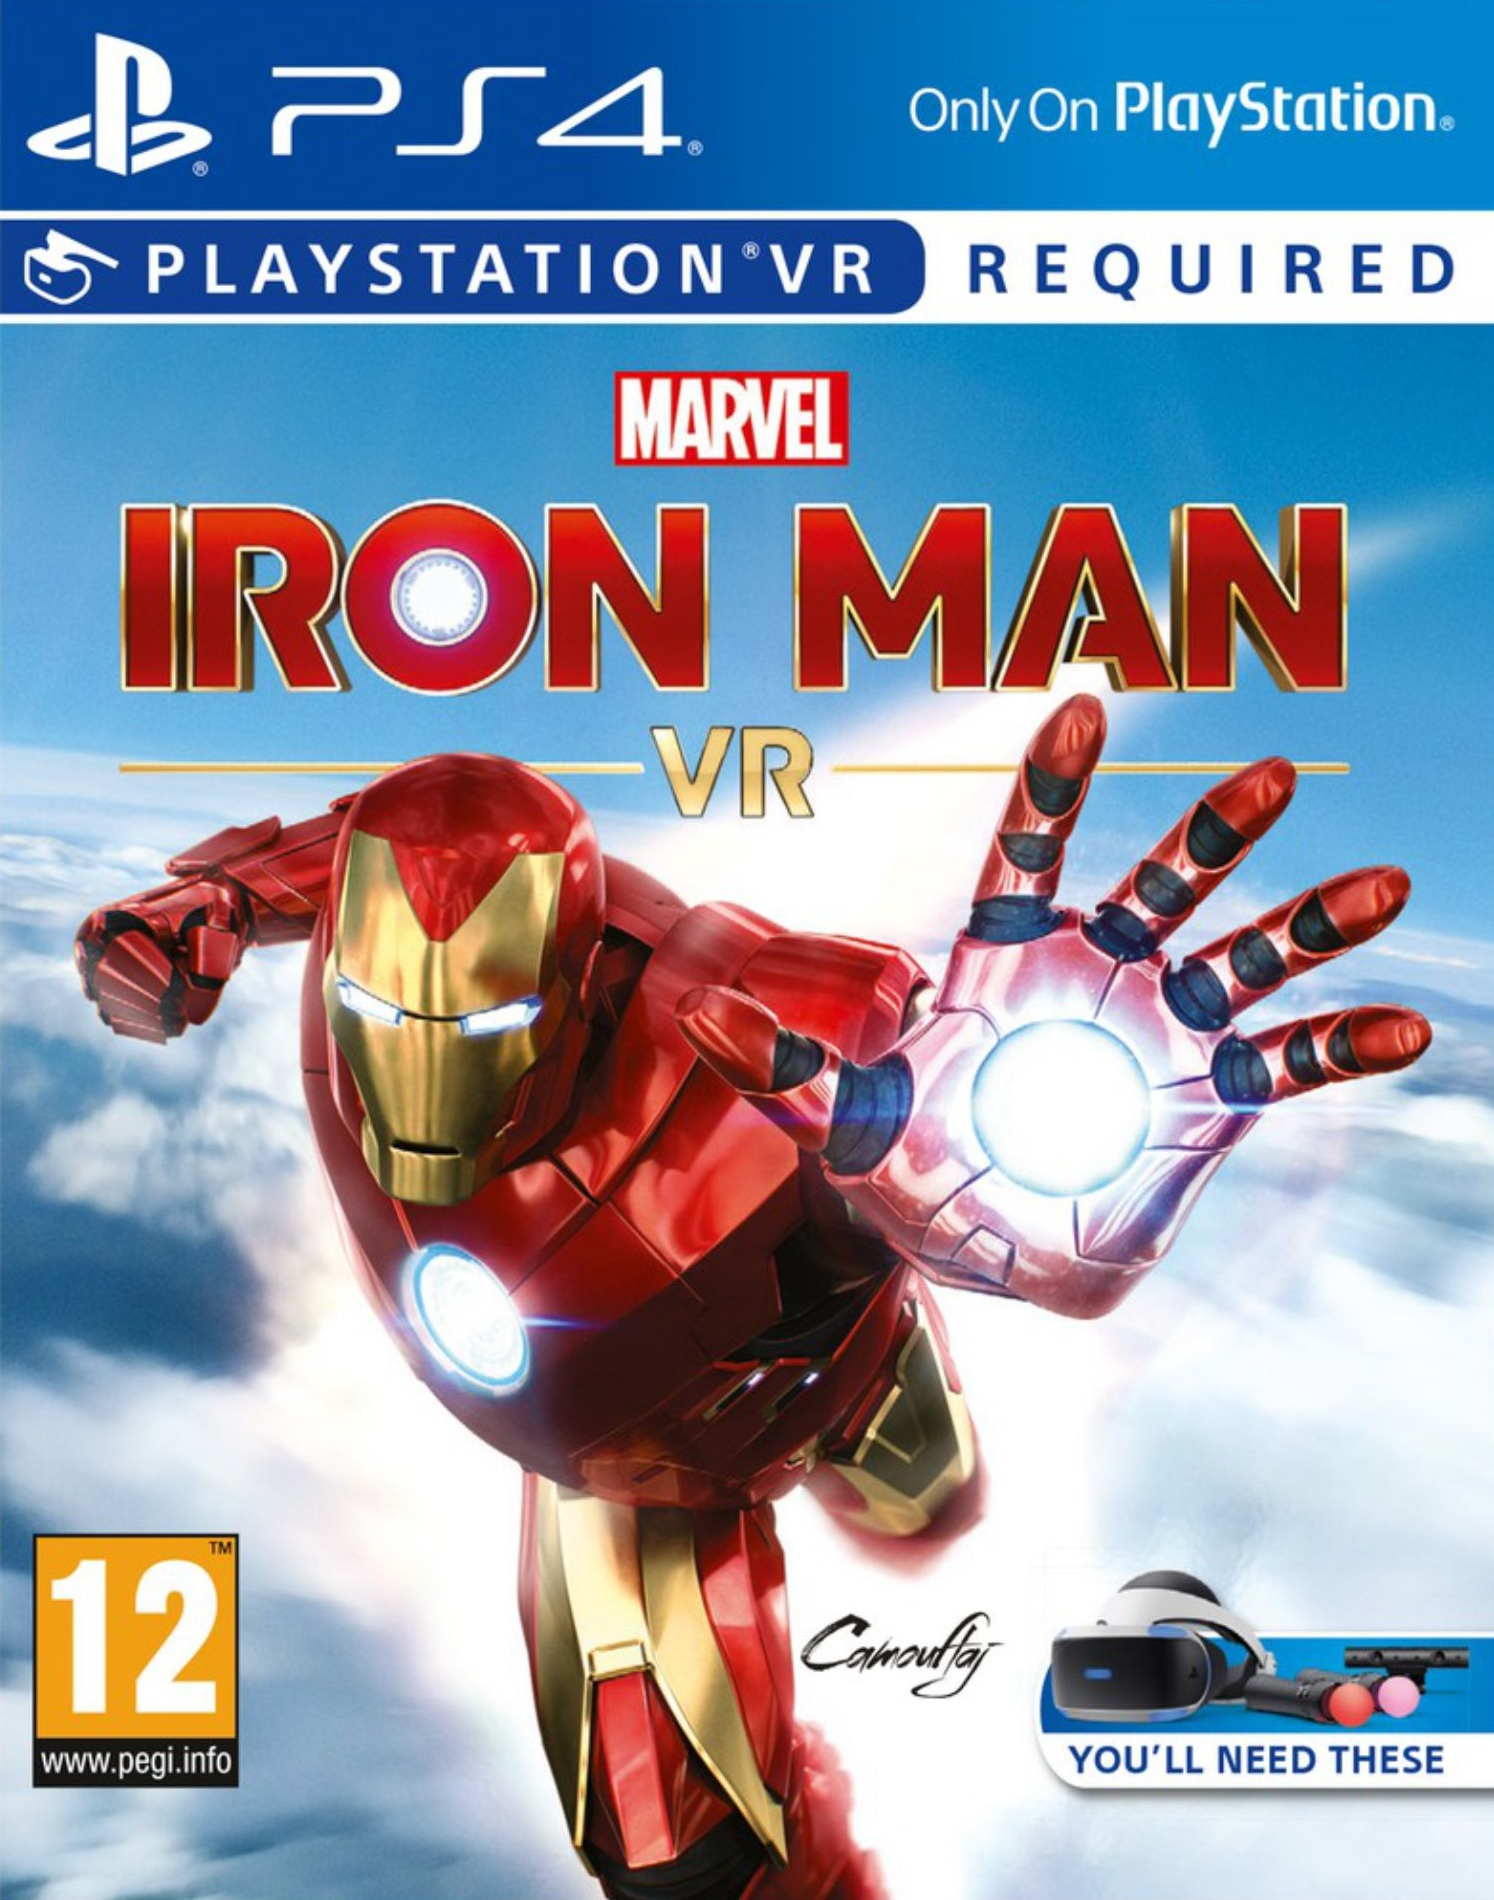 Marvels Iron Man VR